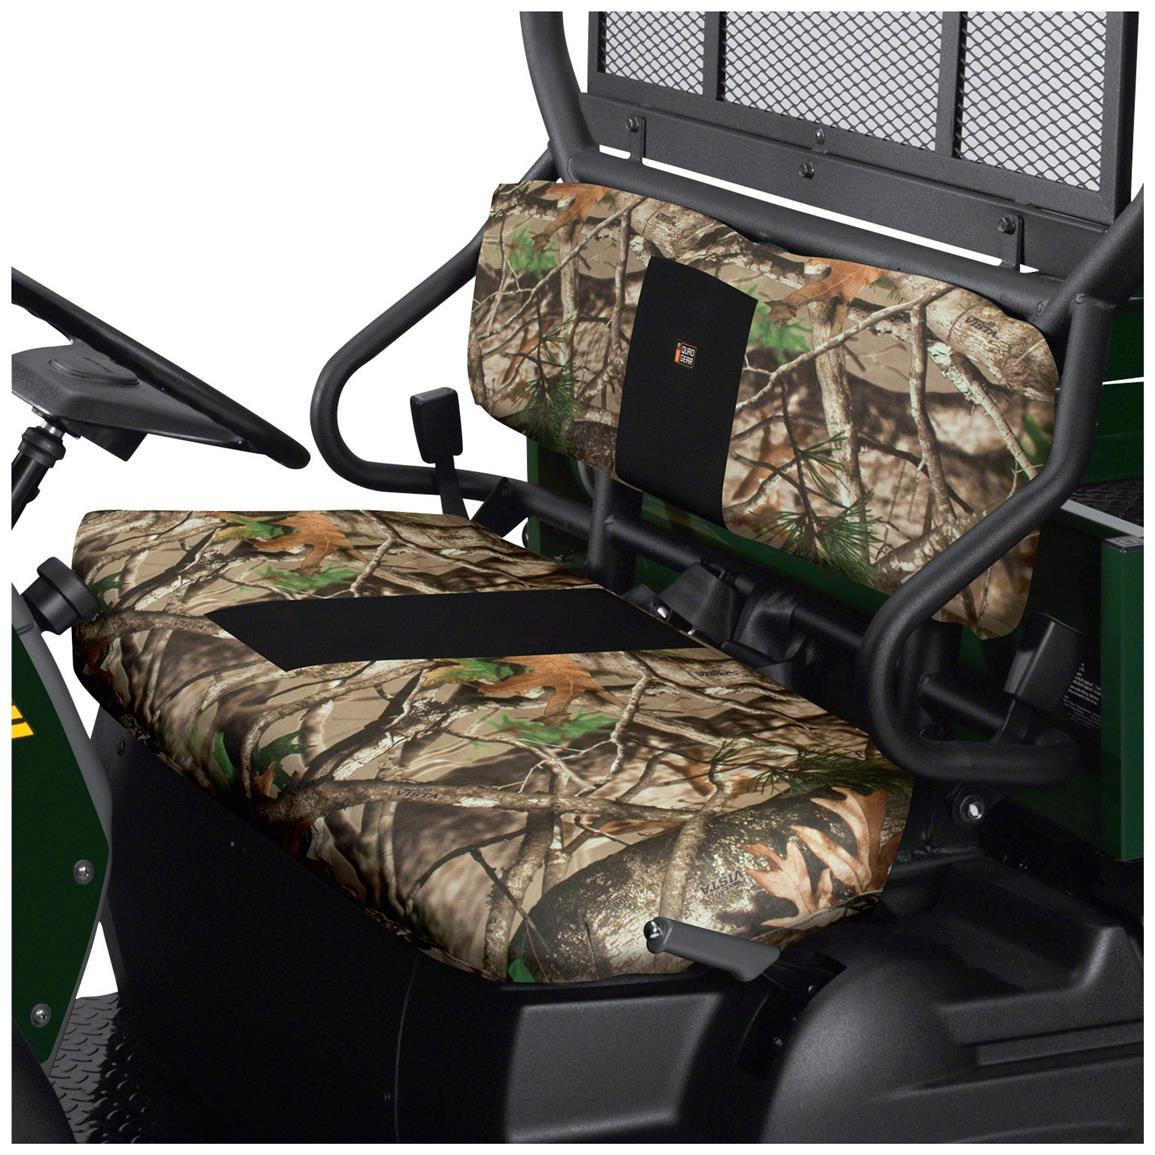 Quad Gear UTV Bench Seat Cover, Kawasaki Mule 4000 Series, Next Camo